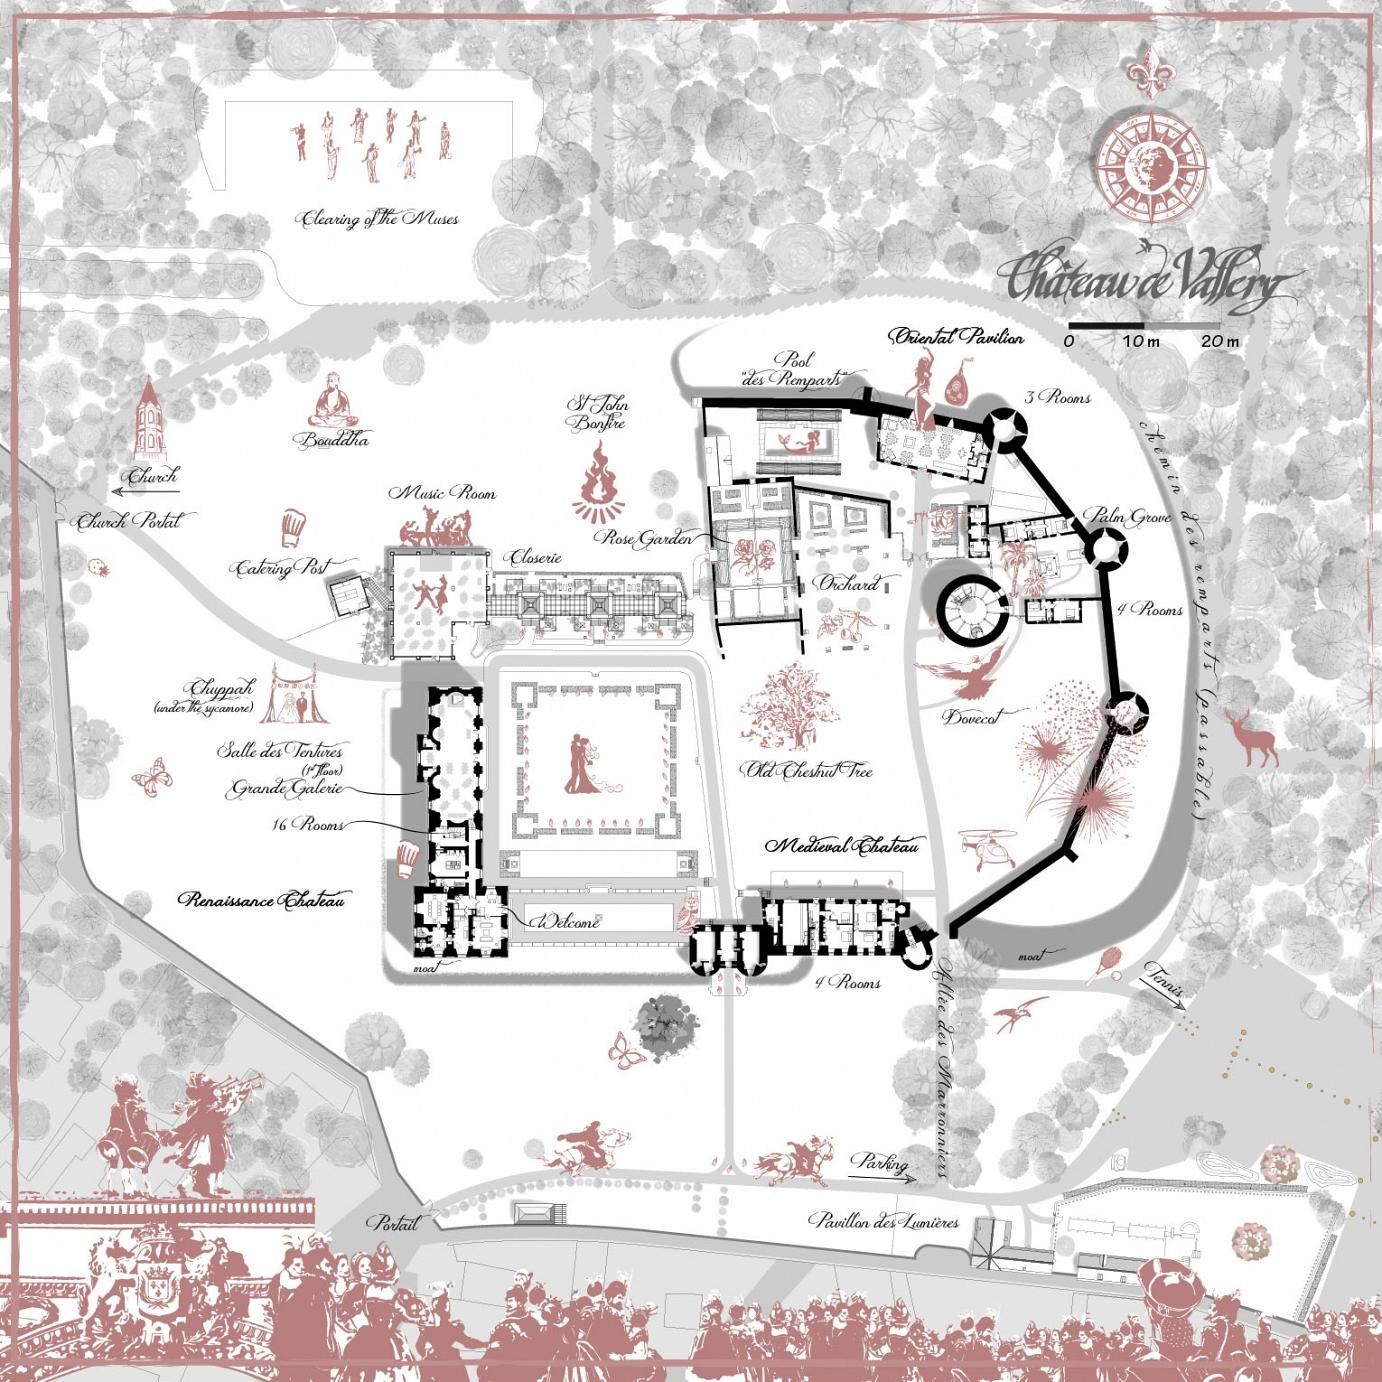 chateau's map to organise a wedding